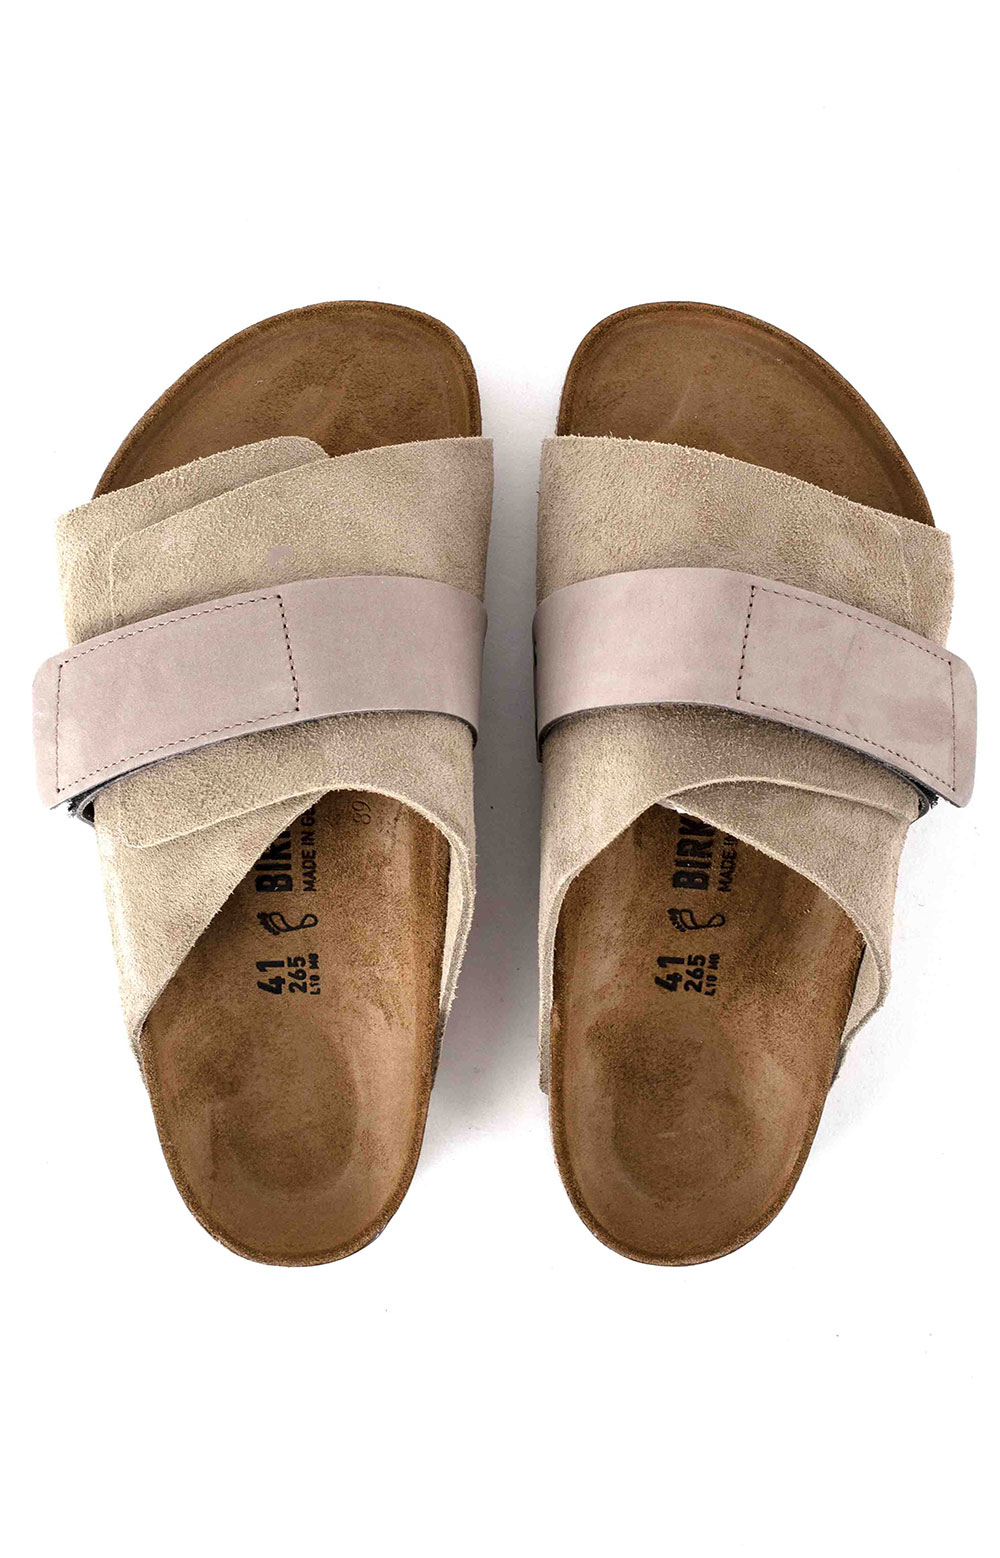 (1015572) Kyoto Sandals - Taupe  5